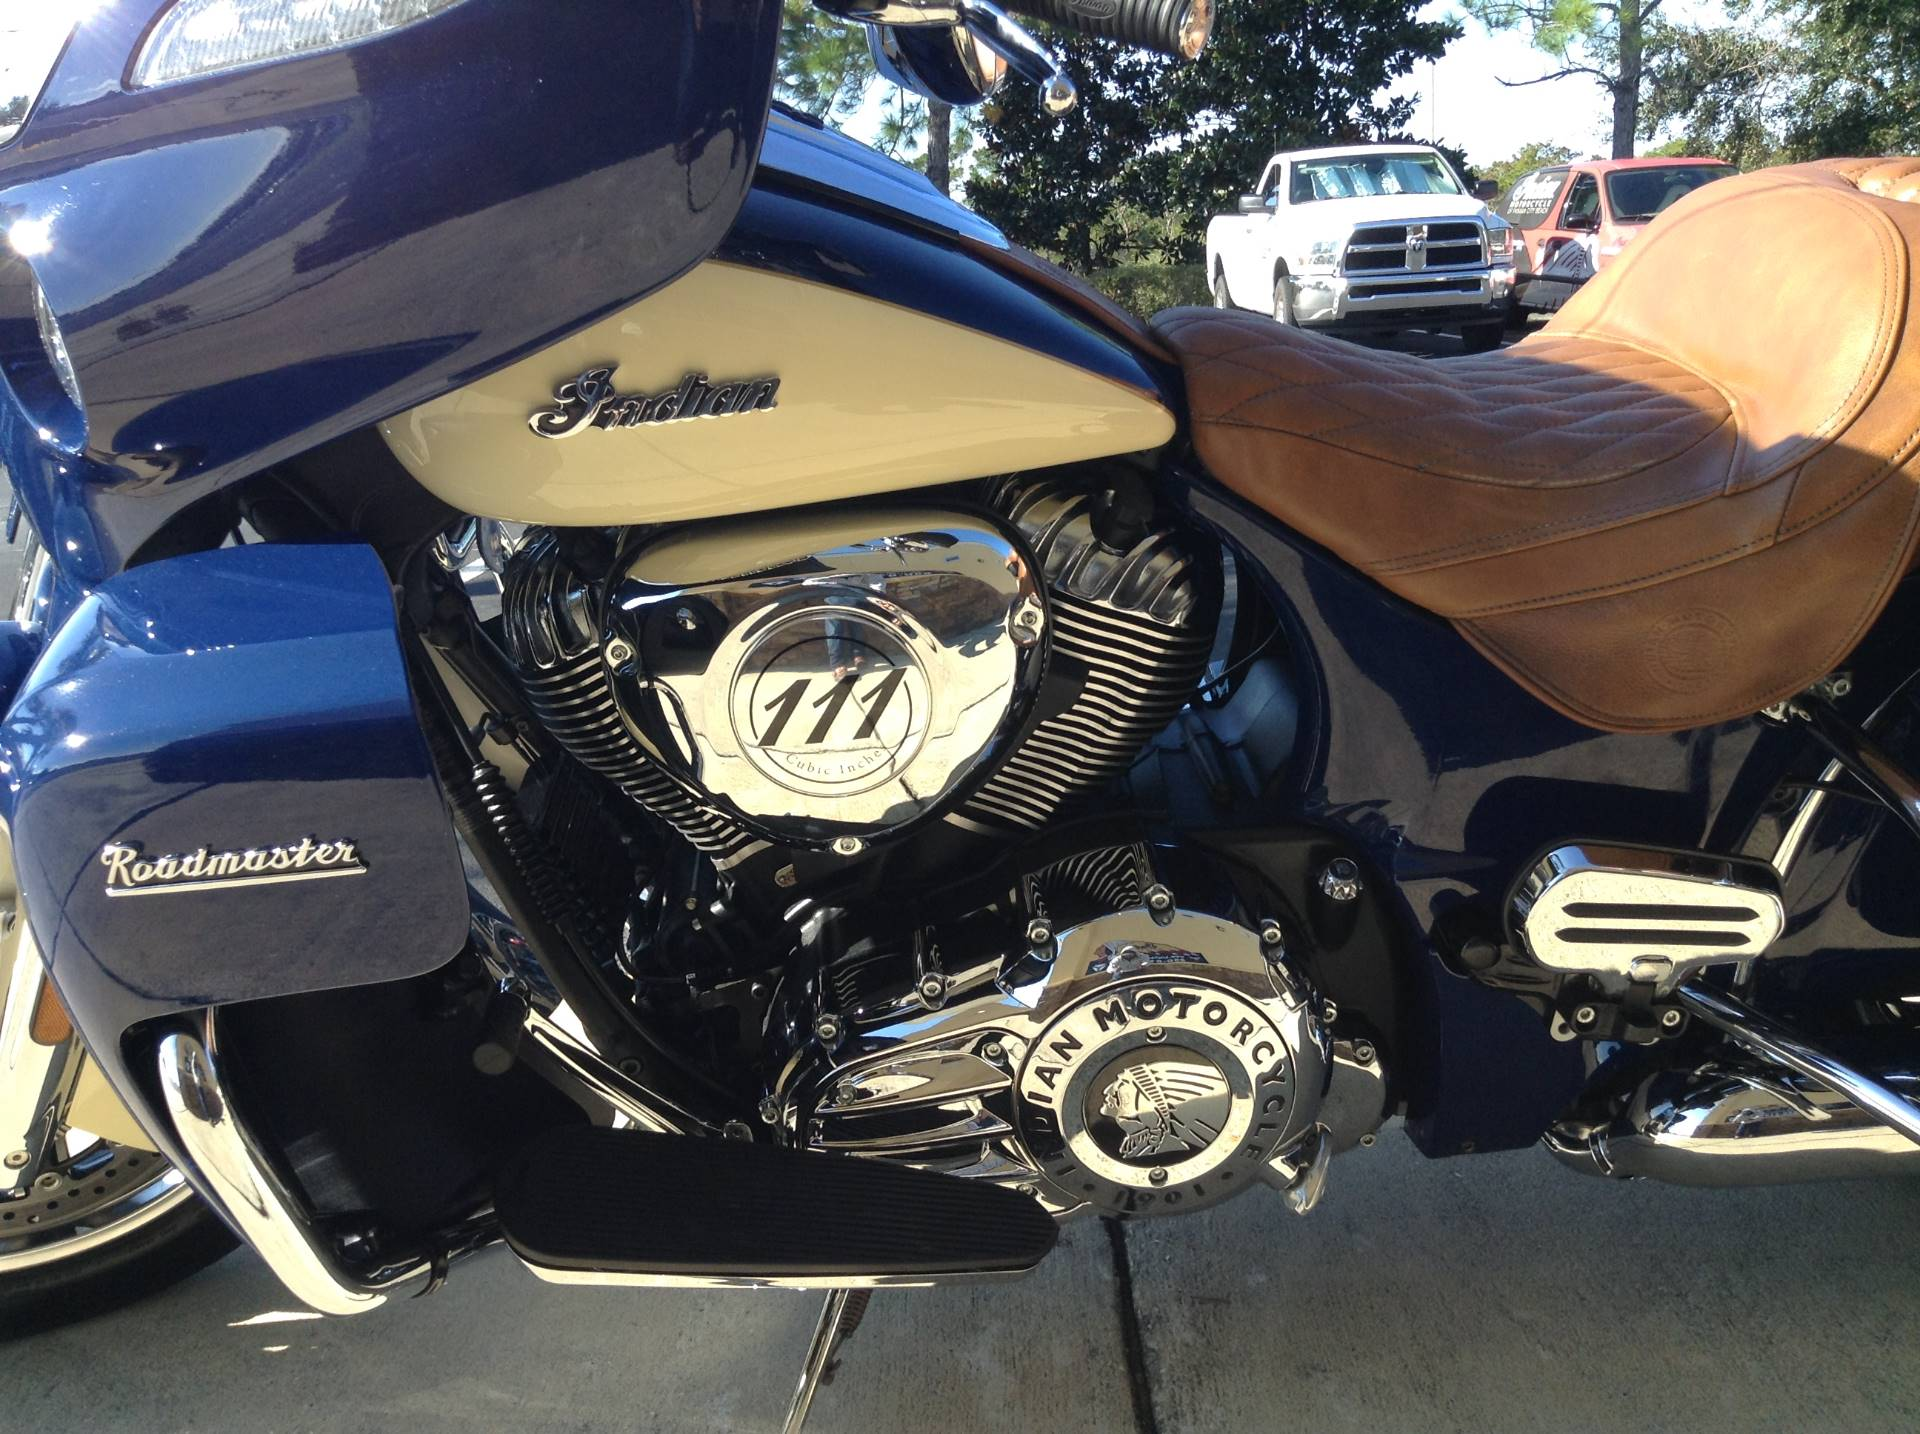 2016 Indian ROAD MASTER in Panama City Beach, Florida